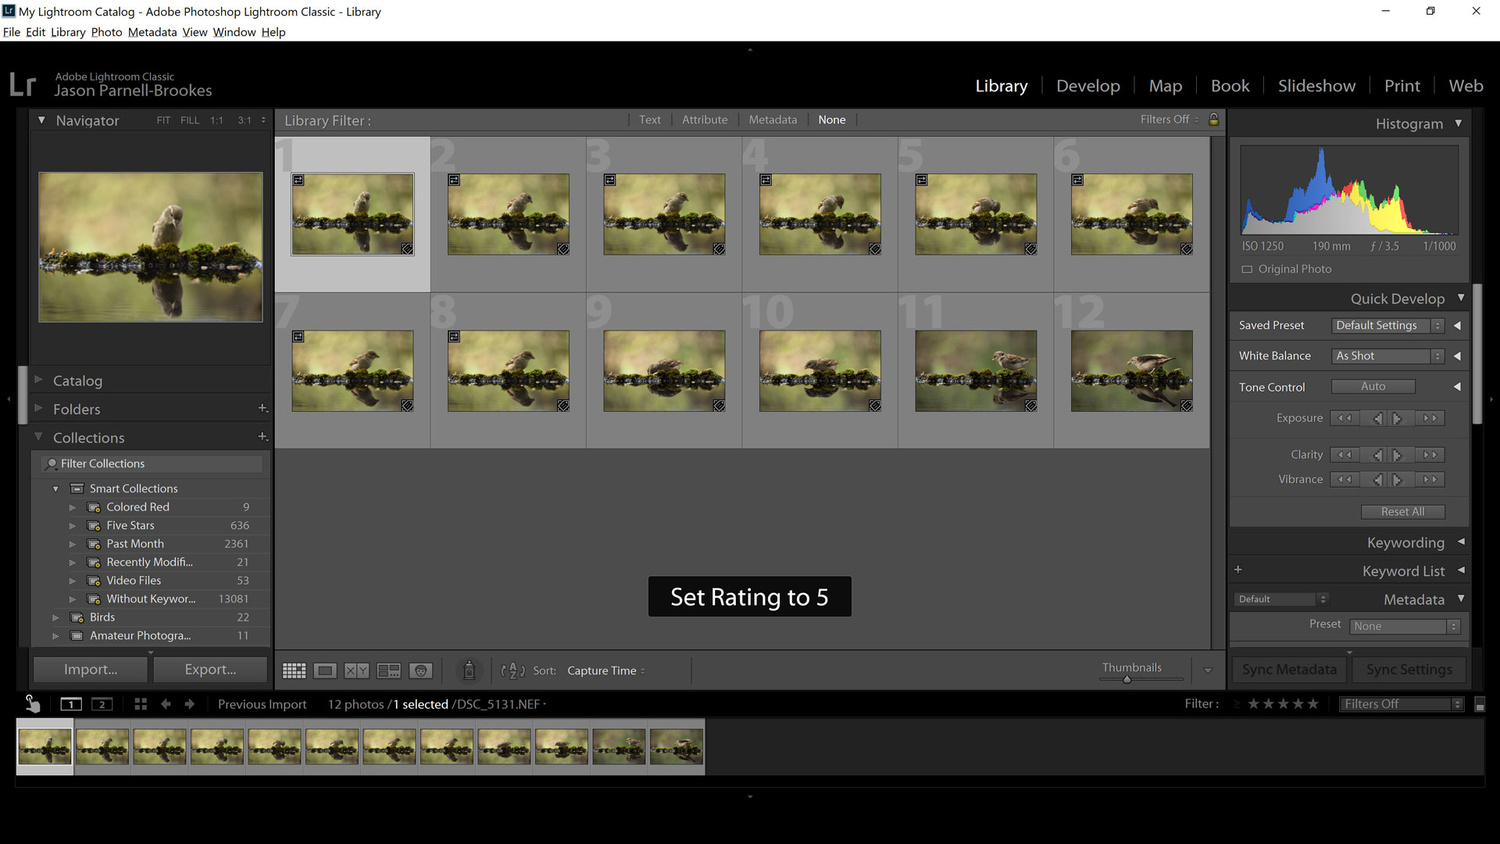 Screenshot showing images appearing in Smart Collection after they meet criteria set